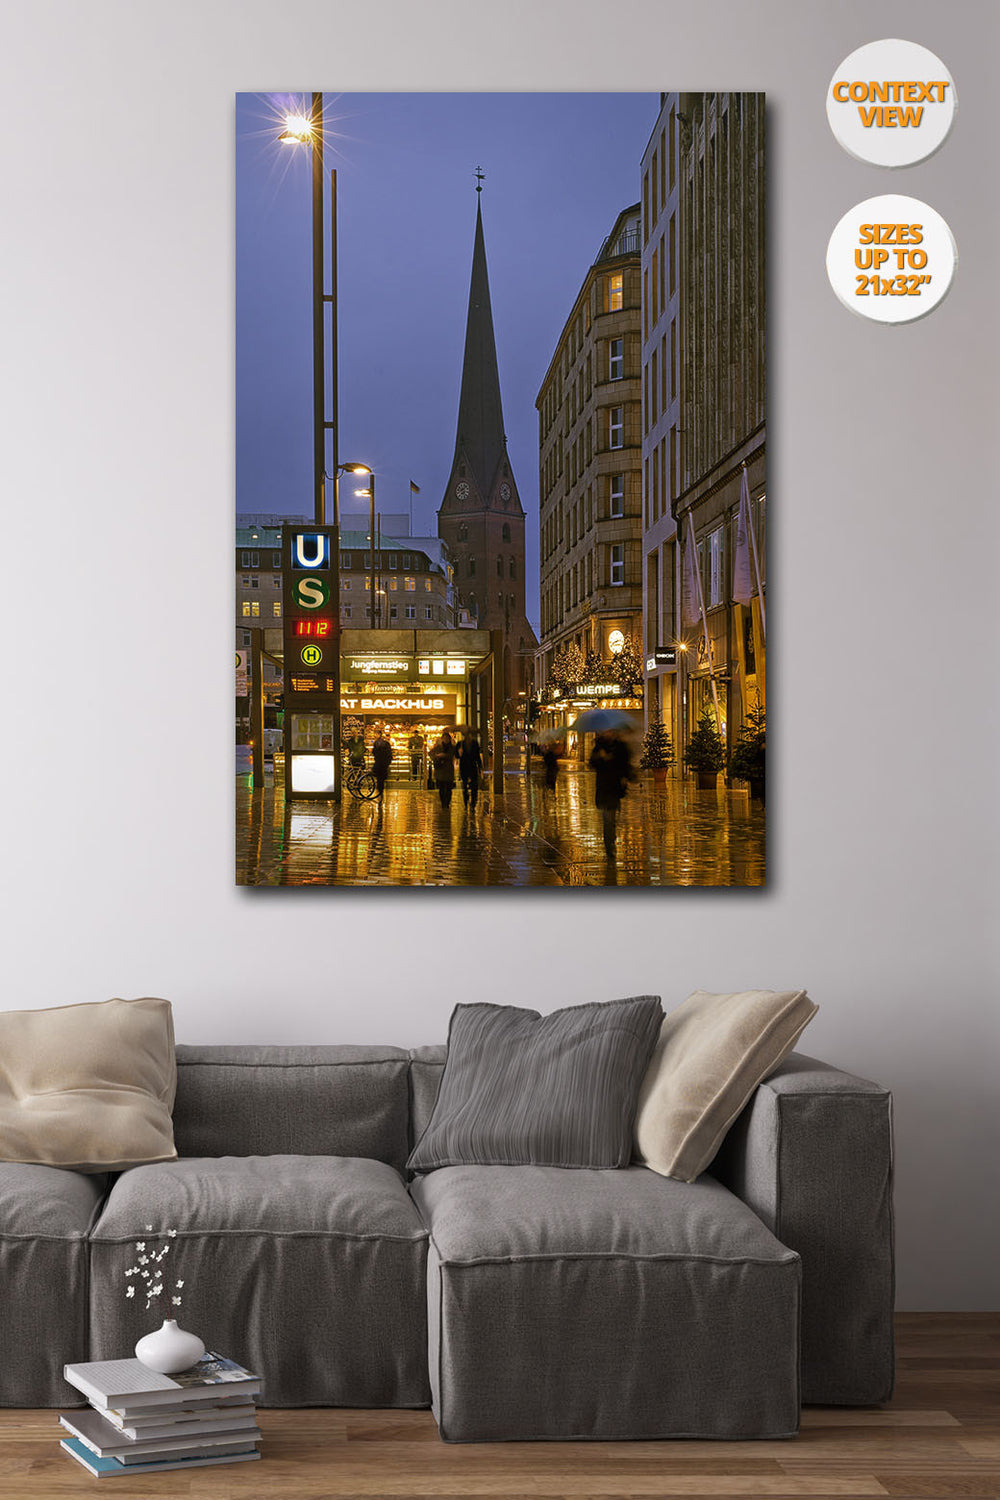 Jungfernstieg at dusk, Hamburg. | Print hanged in living room.